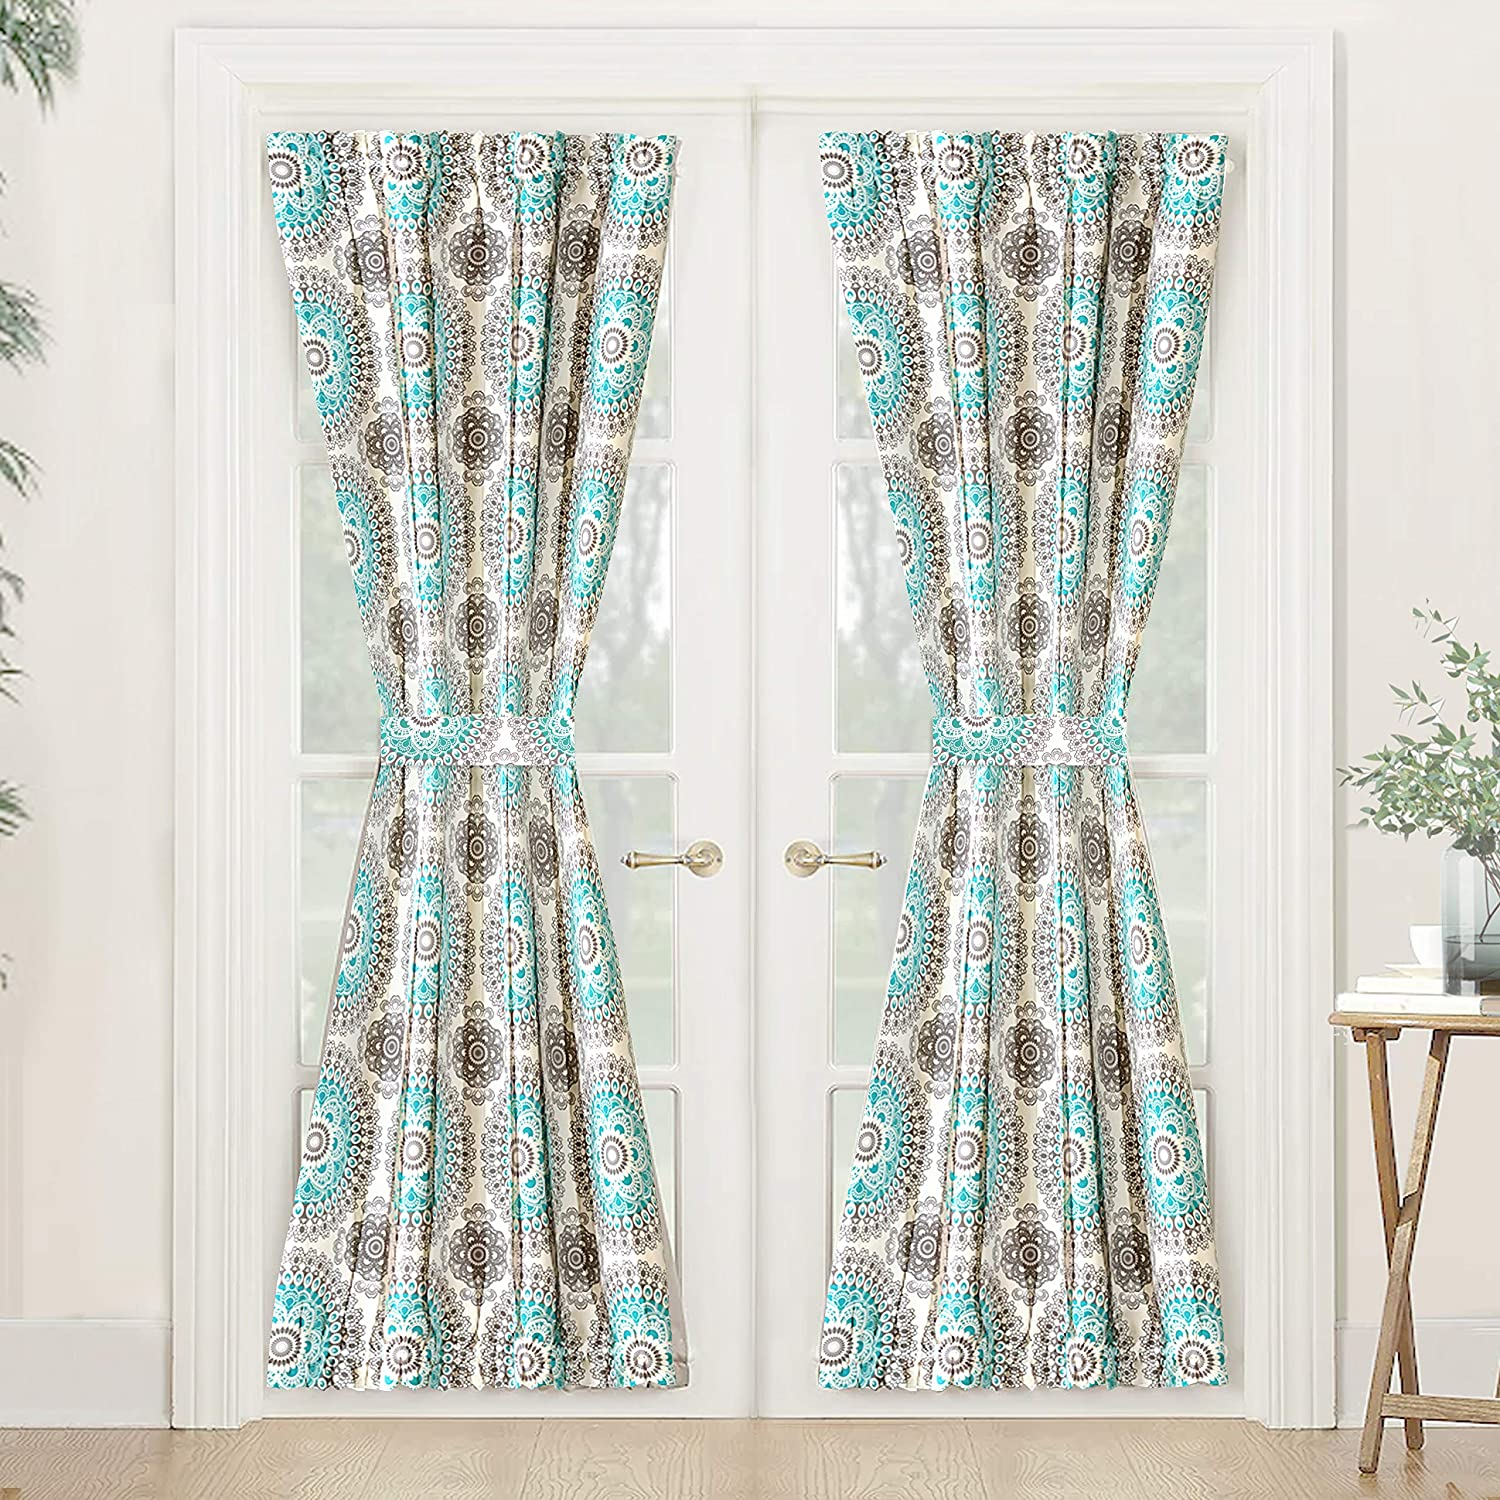 "DriftAway Bella Door Curtain,Thermal Room Darkening Privacy French Door Panel for Patio Sliding Window,Single Rod Pocket Curtain with Bonus Matching Tieback,52""Wide By 72"" Long +1.5"" Header(Aqua/Gray)"